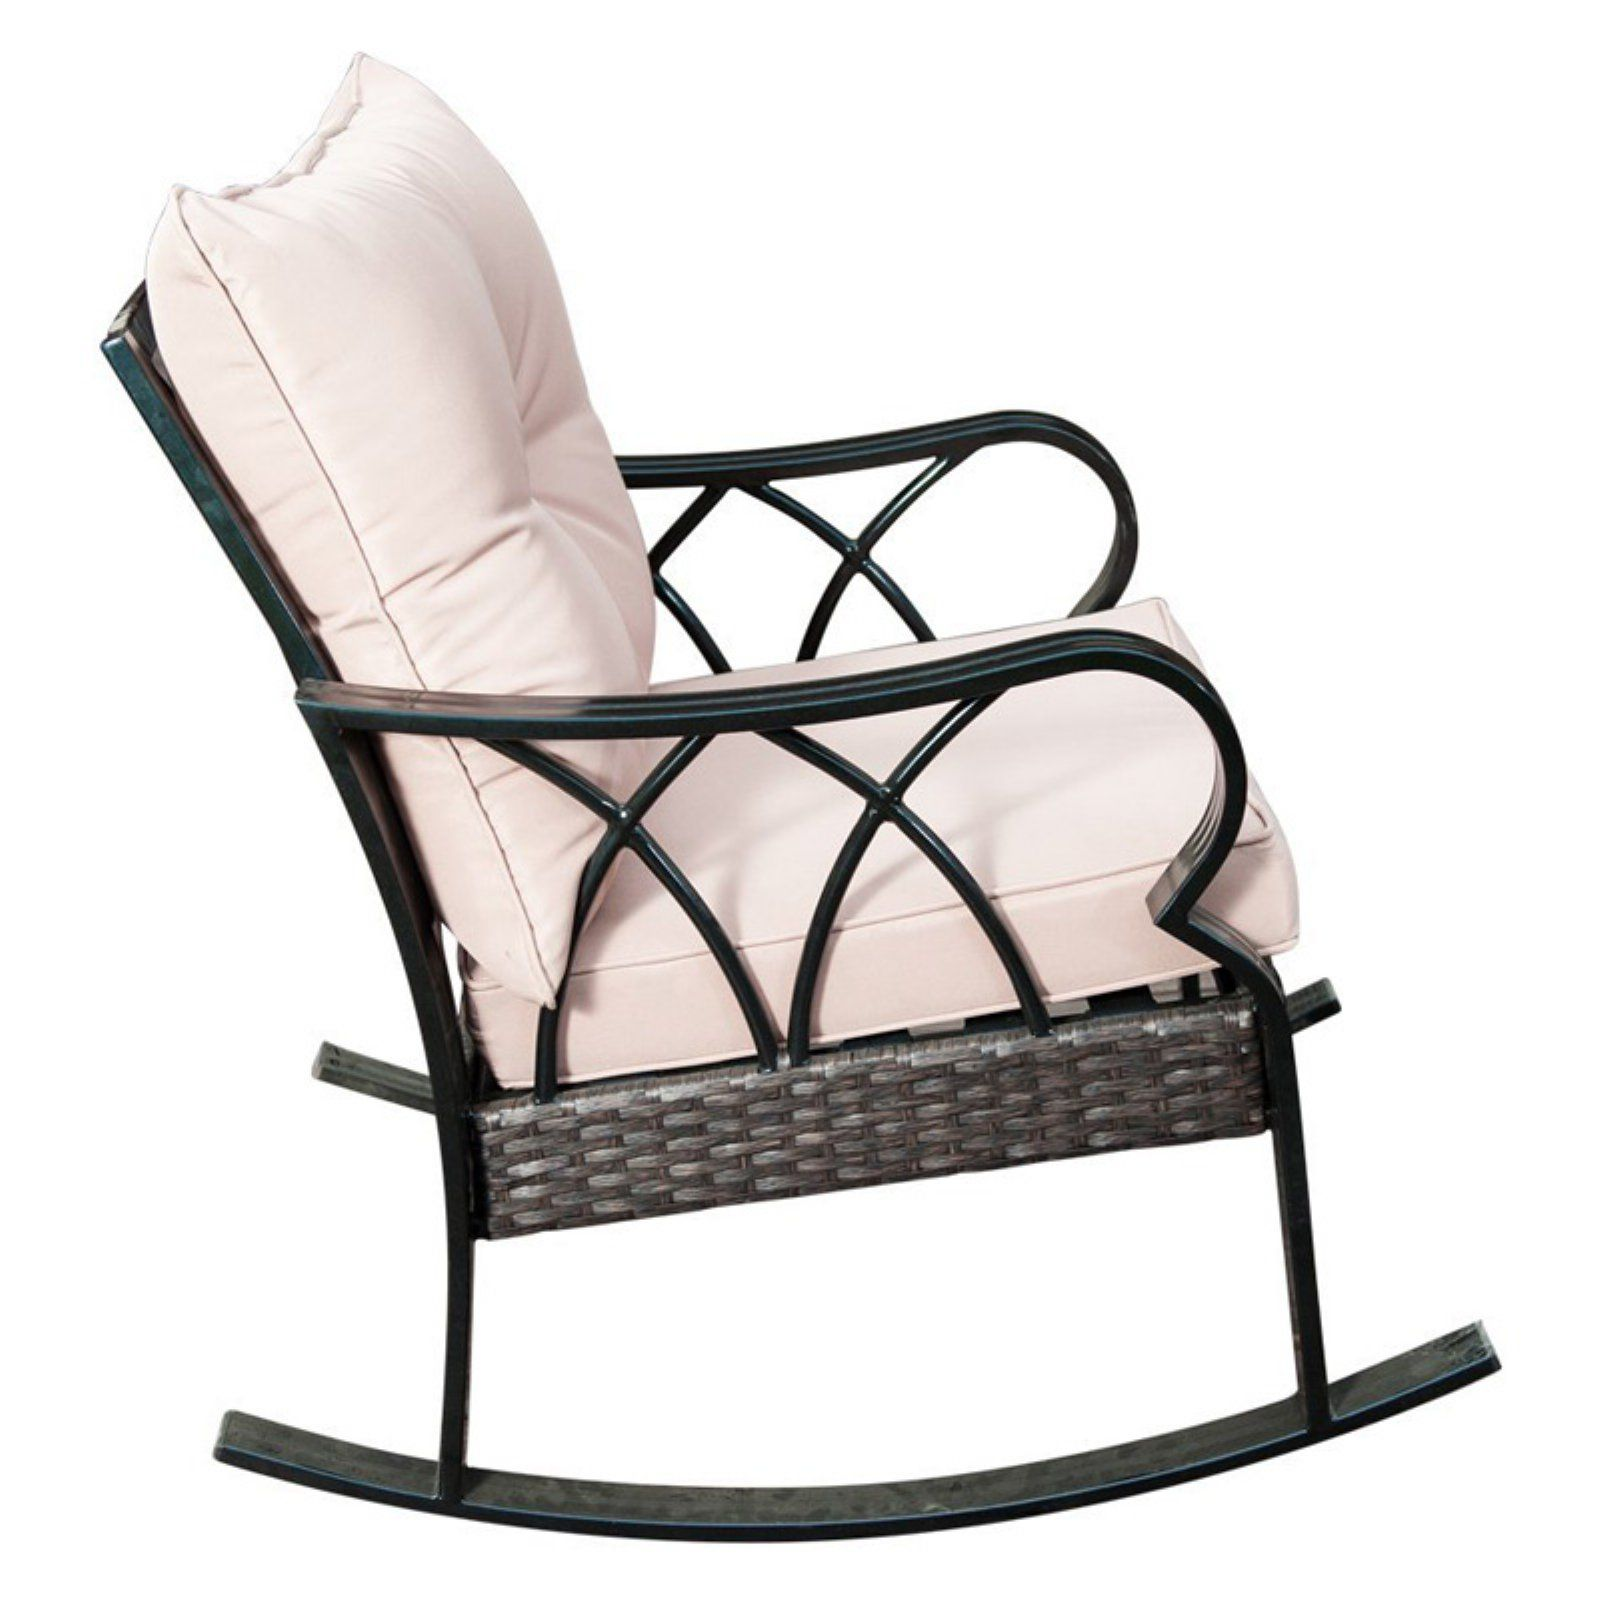 Patio Rocker Chairs Outdoor Sunlife Garden Cafe Wicker Patio Rocking Chair With